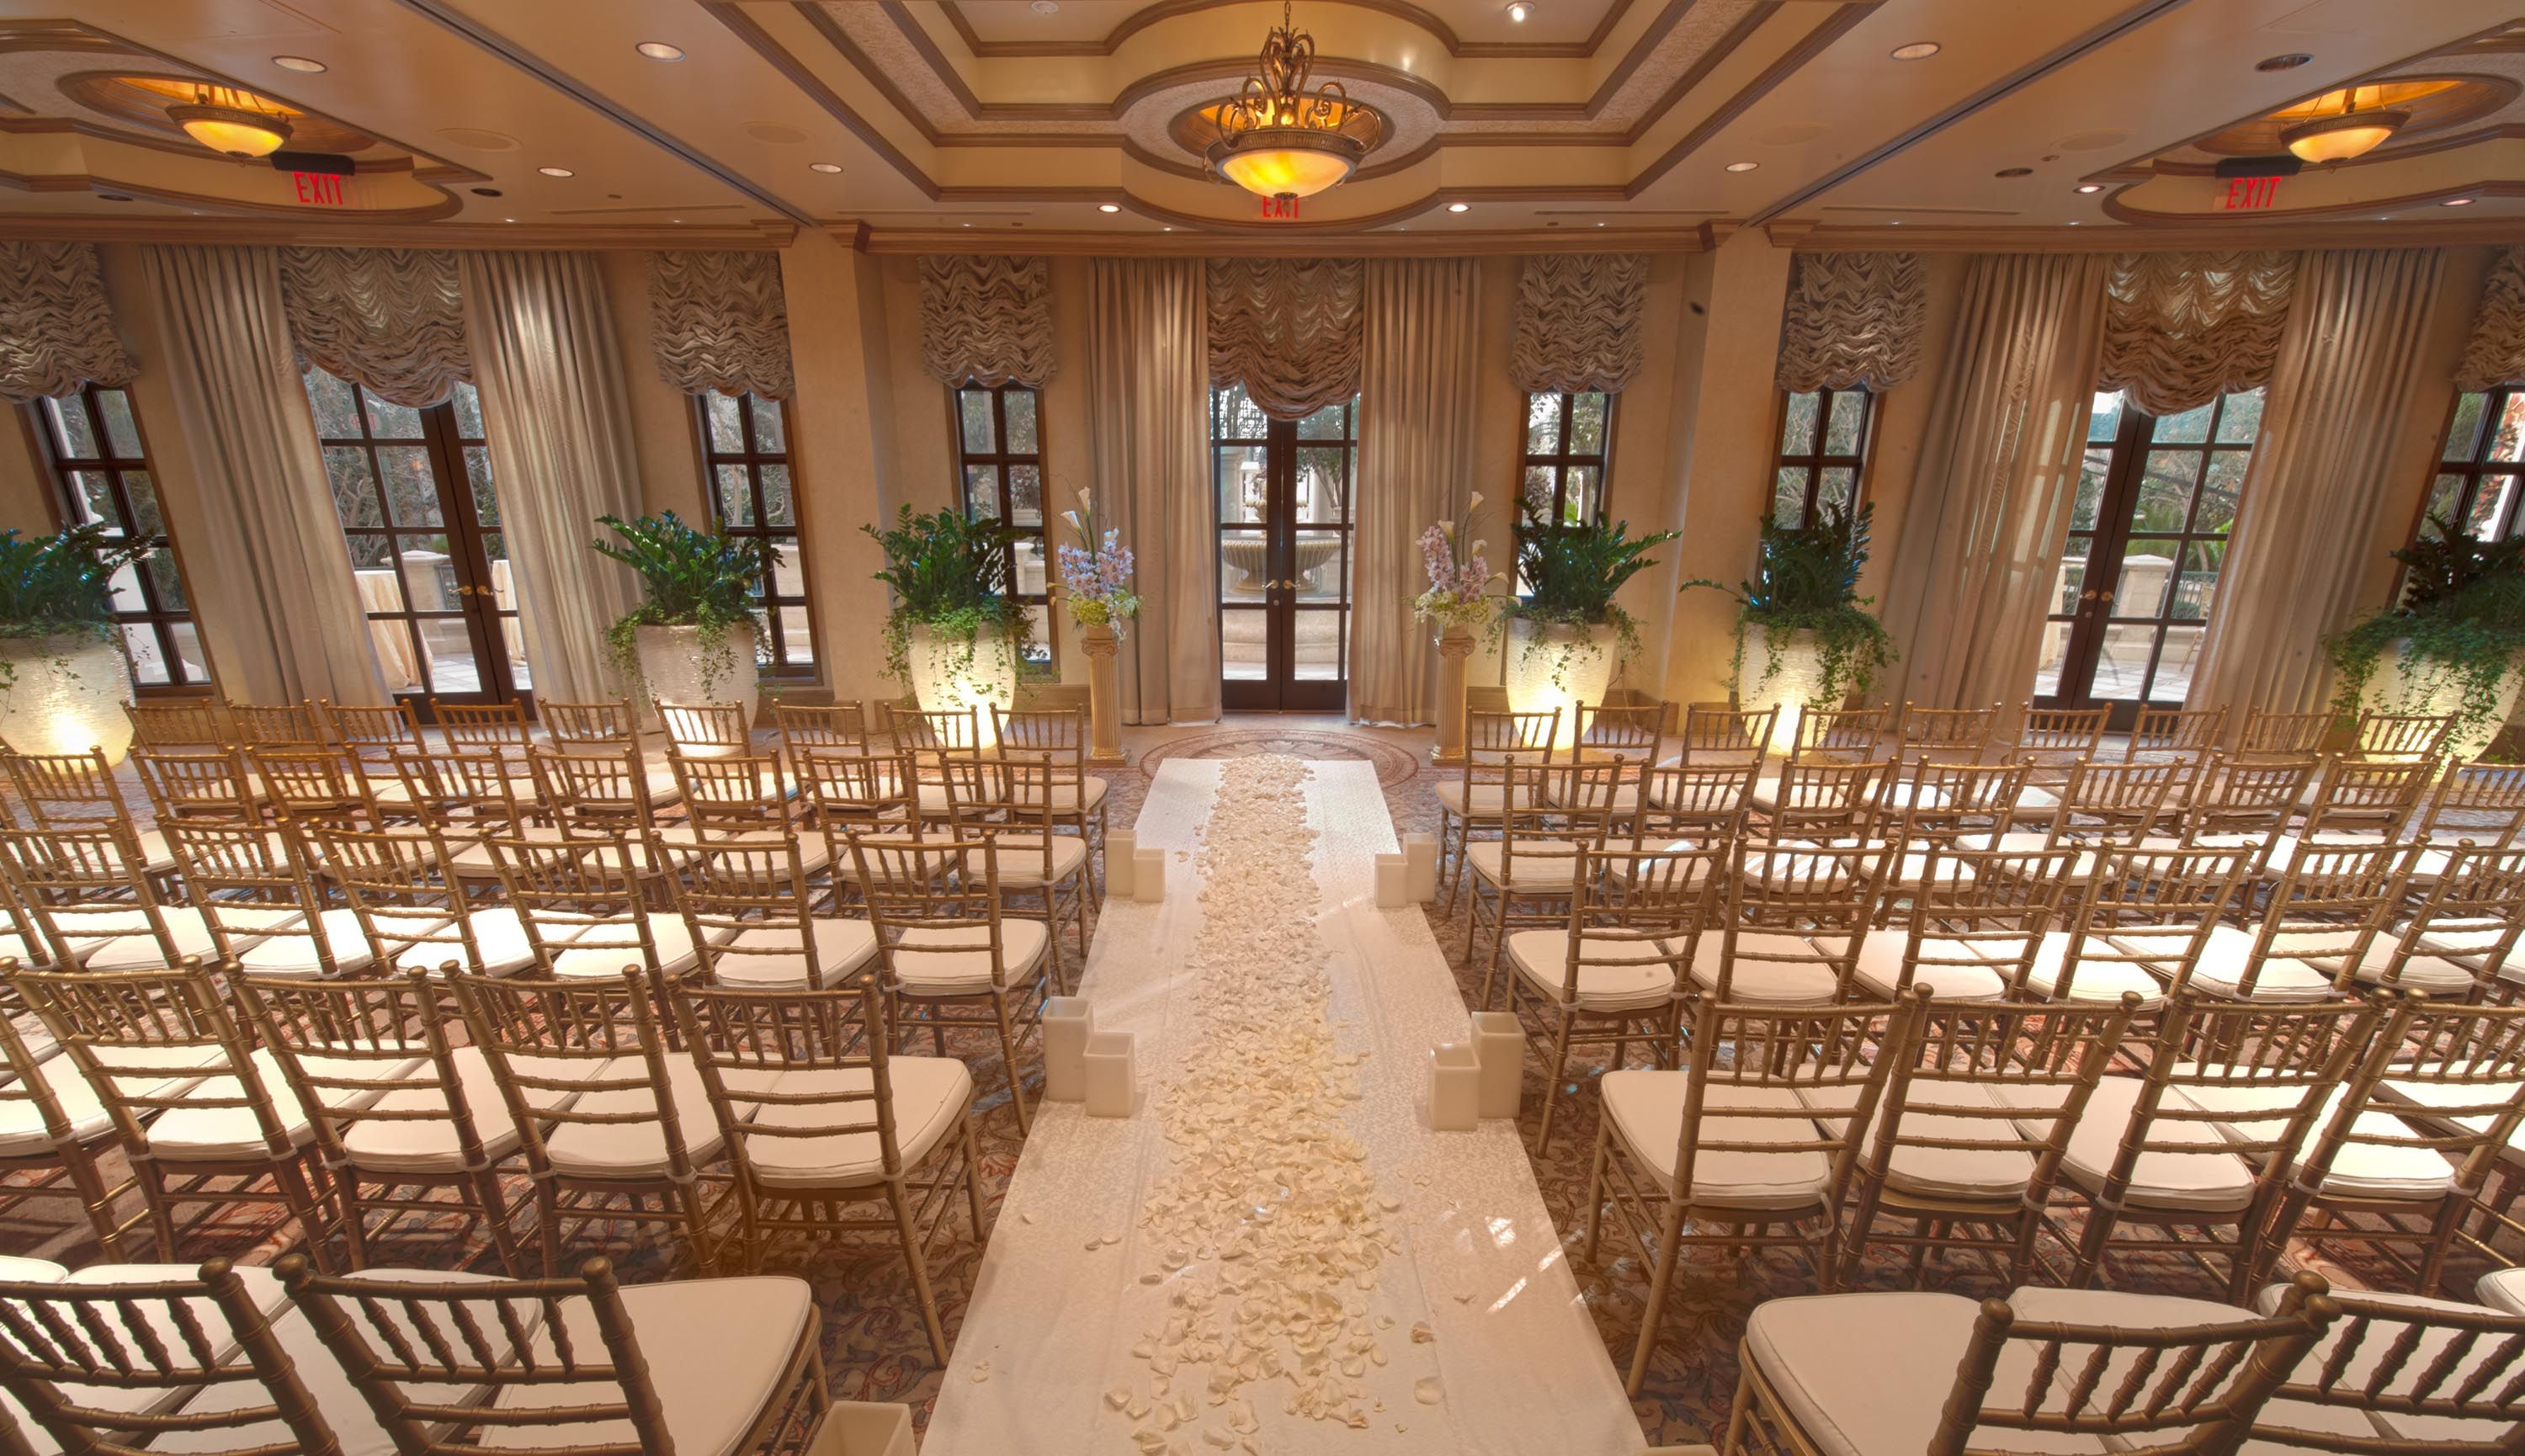 wedding chapel las vegas Las Vegas Wedding Packages Plan a perfect Las Vegas destination wedding at The Venetian bring the Old World charm of Italy to your wedding ceremony